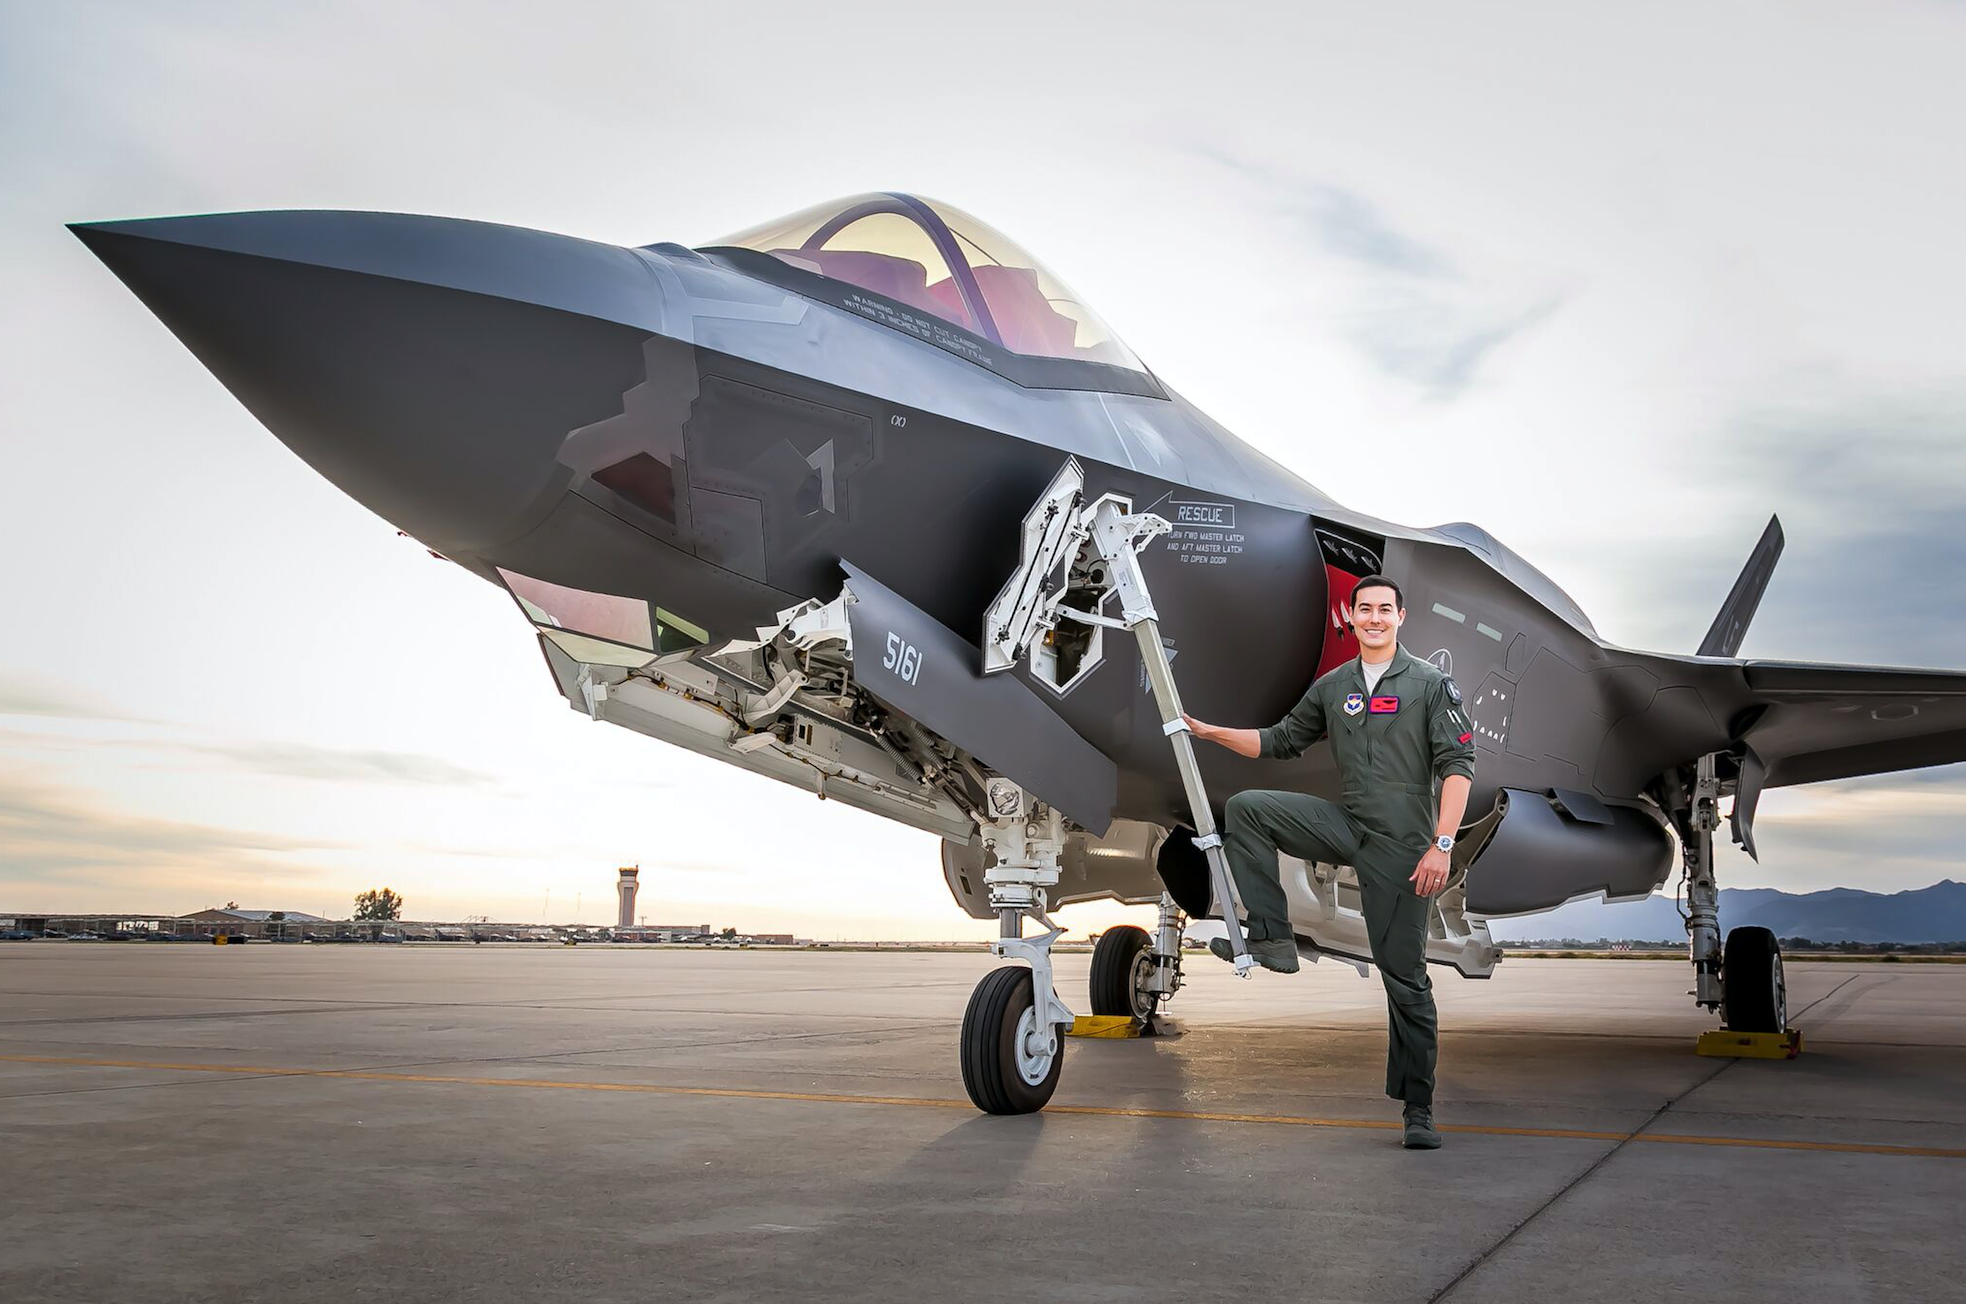 F 35 Pilot Interview | What It's Like to Fly the F-35